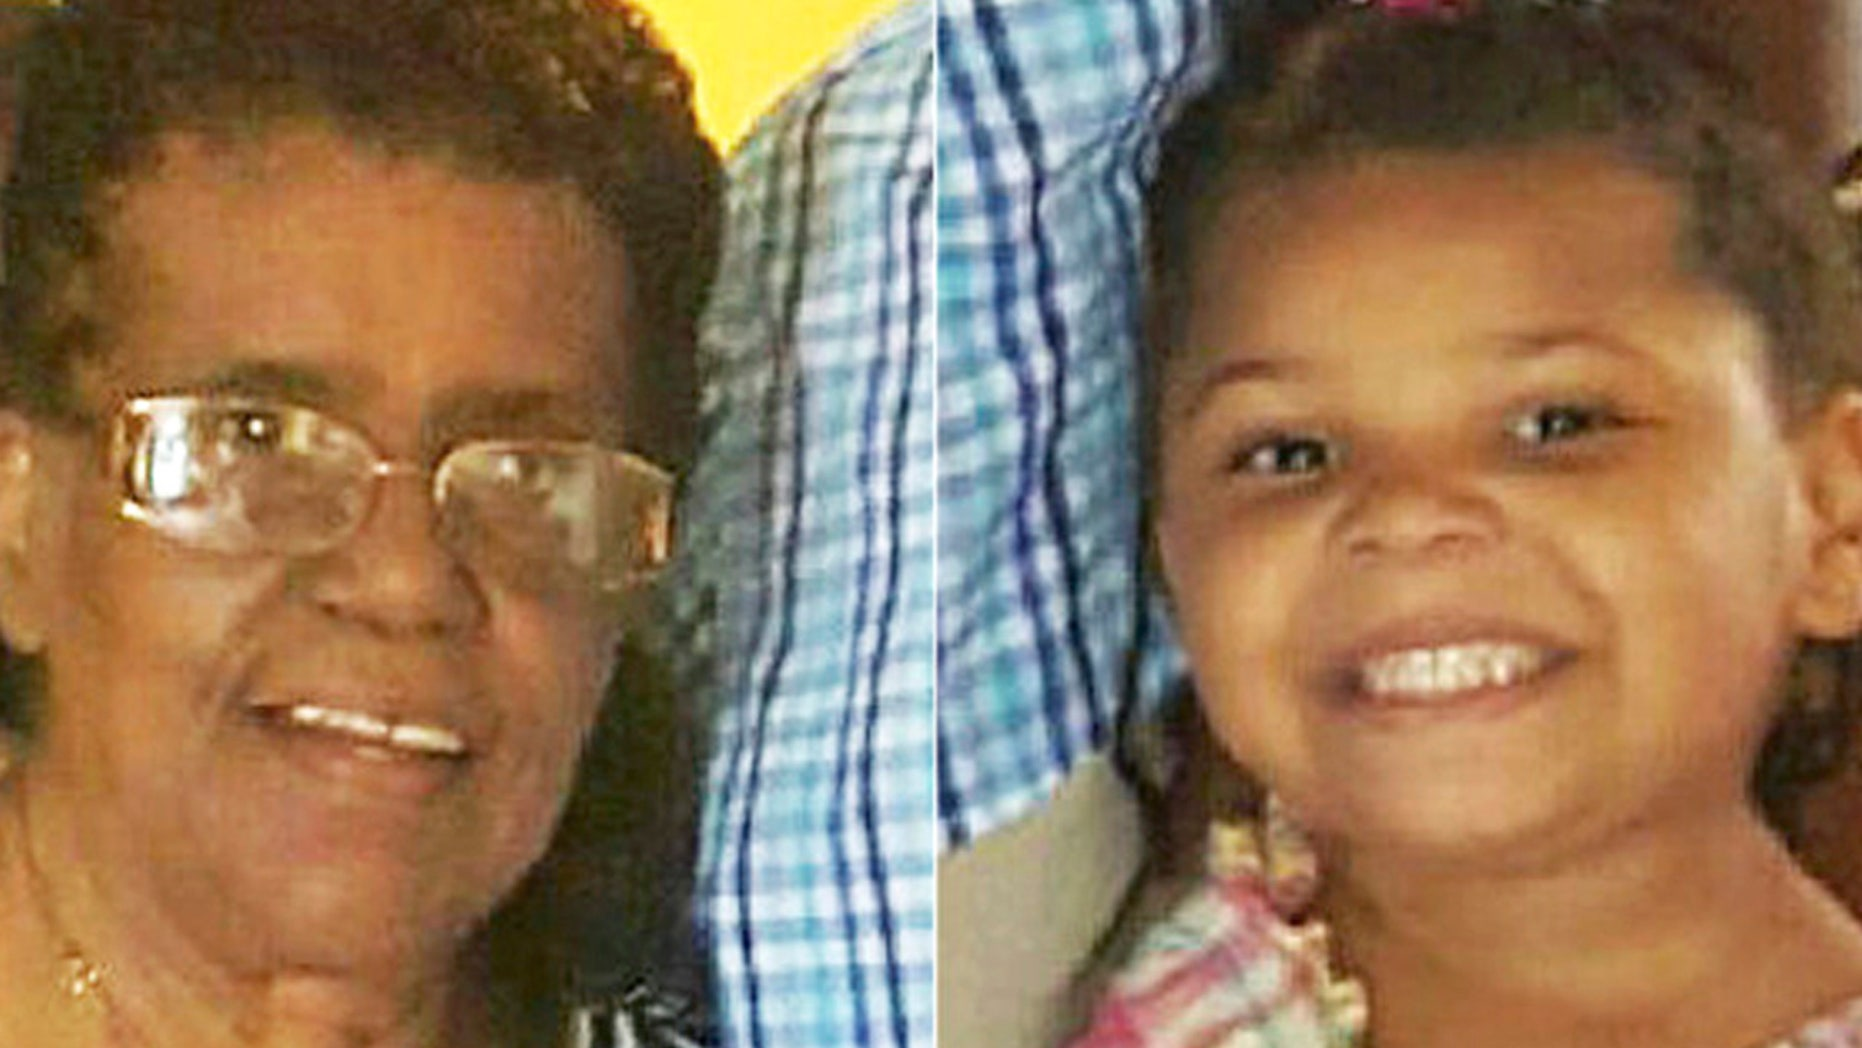 This combination of photos released by the Hamilton Police Department in New Jersey shows Barbara Briley, left, and her 5-year-old great-granddaughter La'Myra Briley.